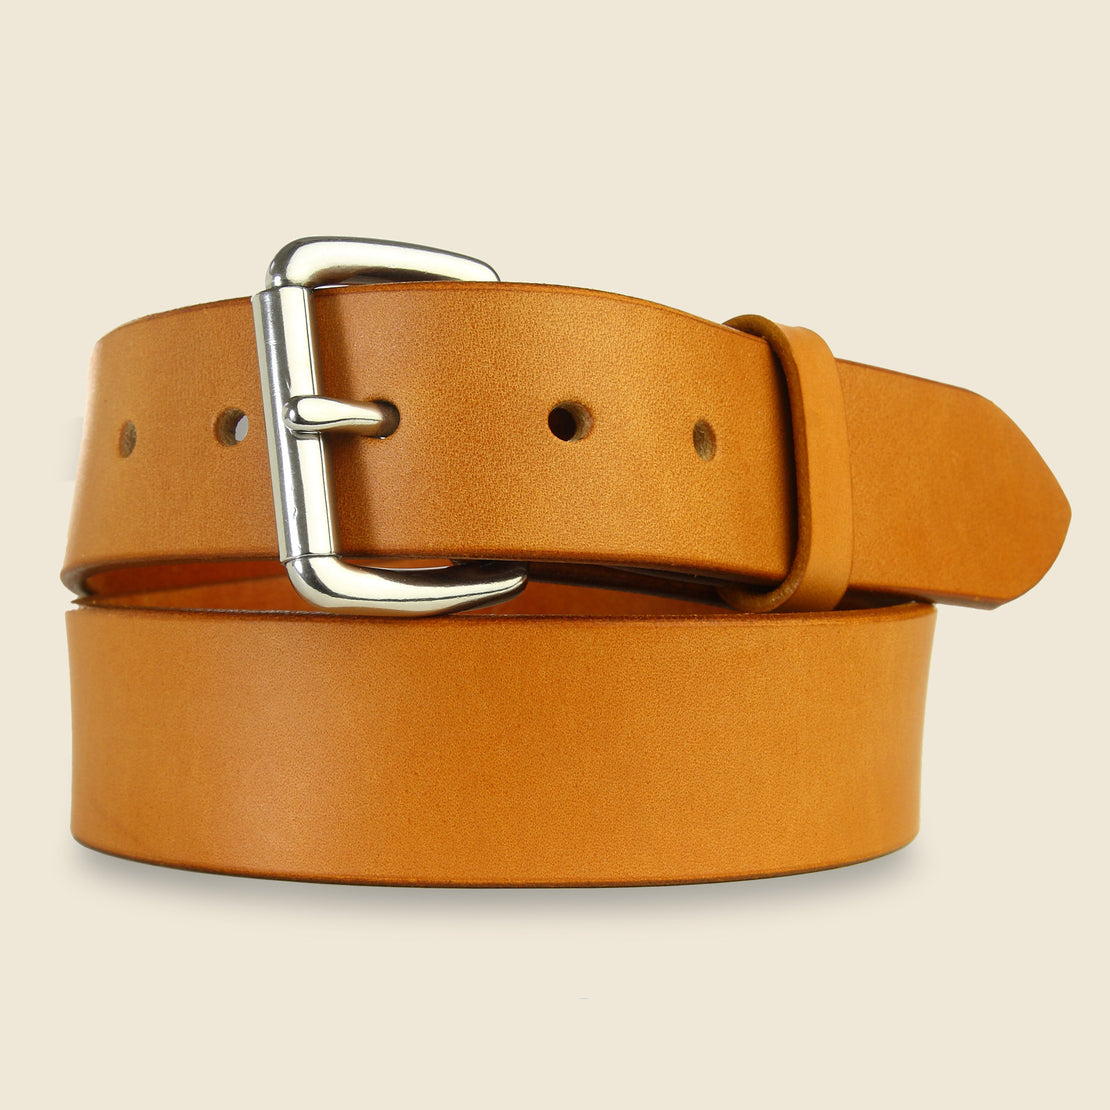 Tanner Standard Belt - Tan/Stainless Steel